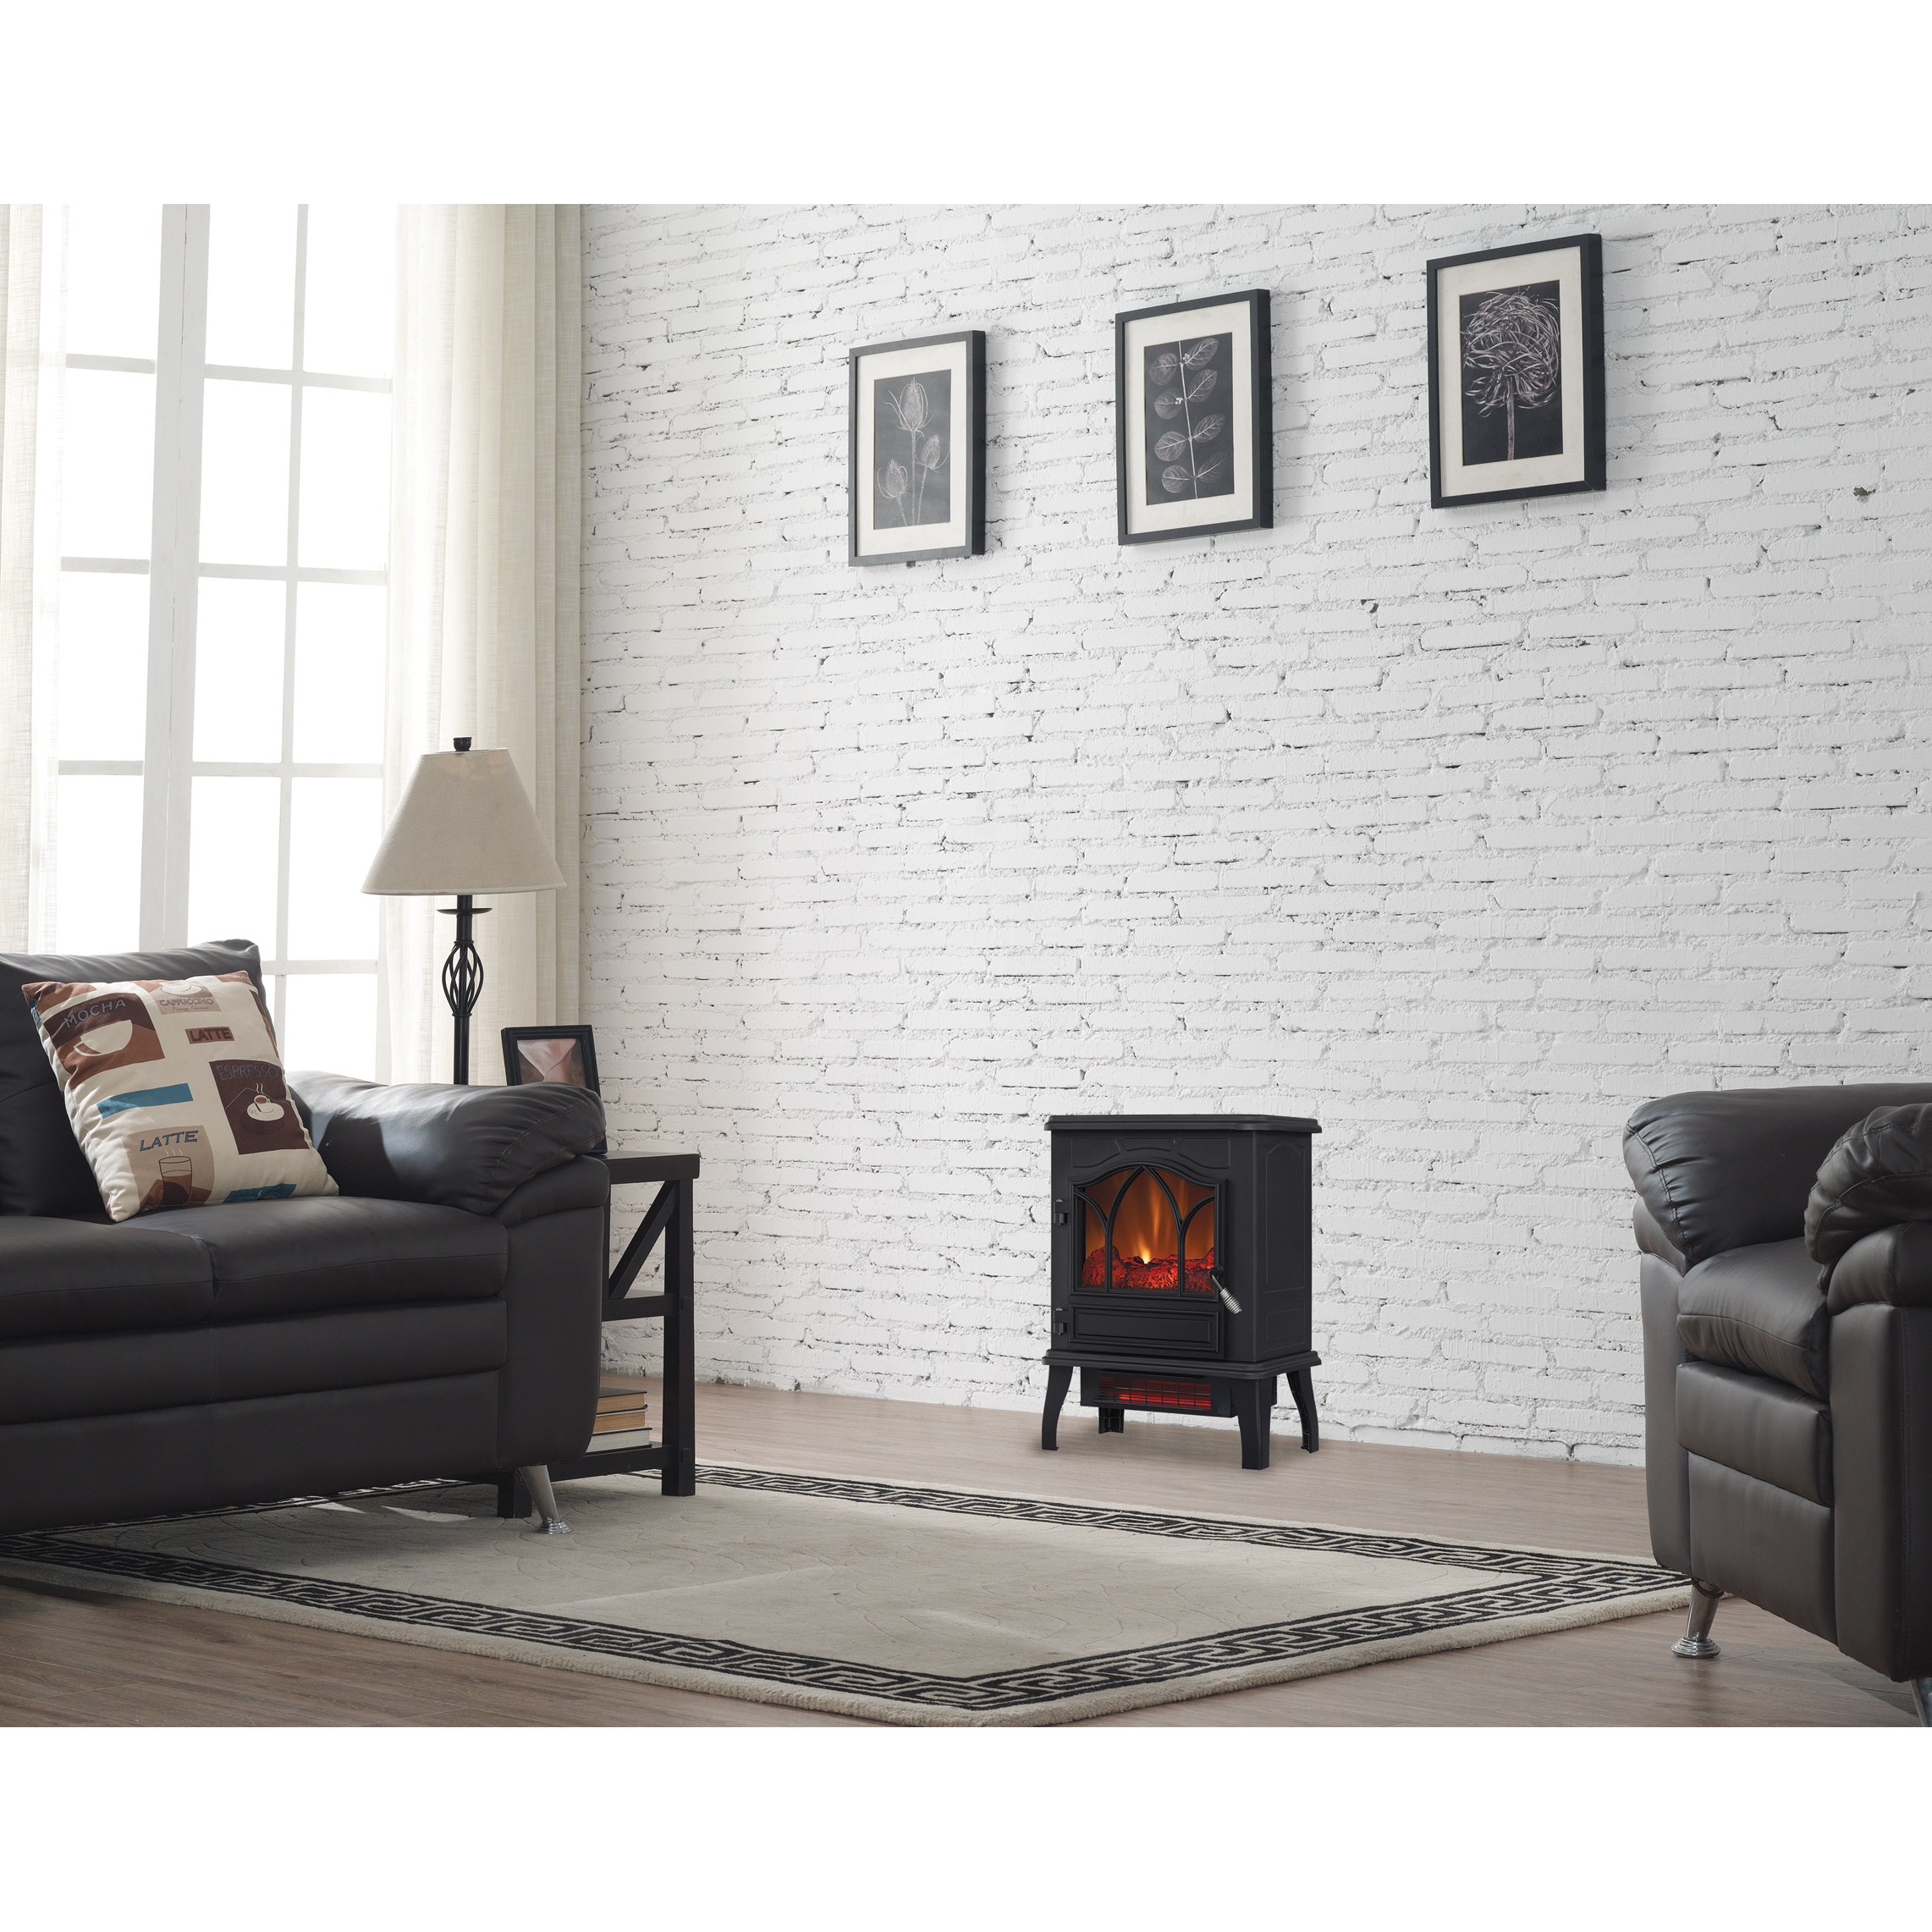 ChimneyFree Heater Electric Infrared Quartz Stove Portable Fireplace 5200  BTU!